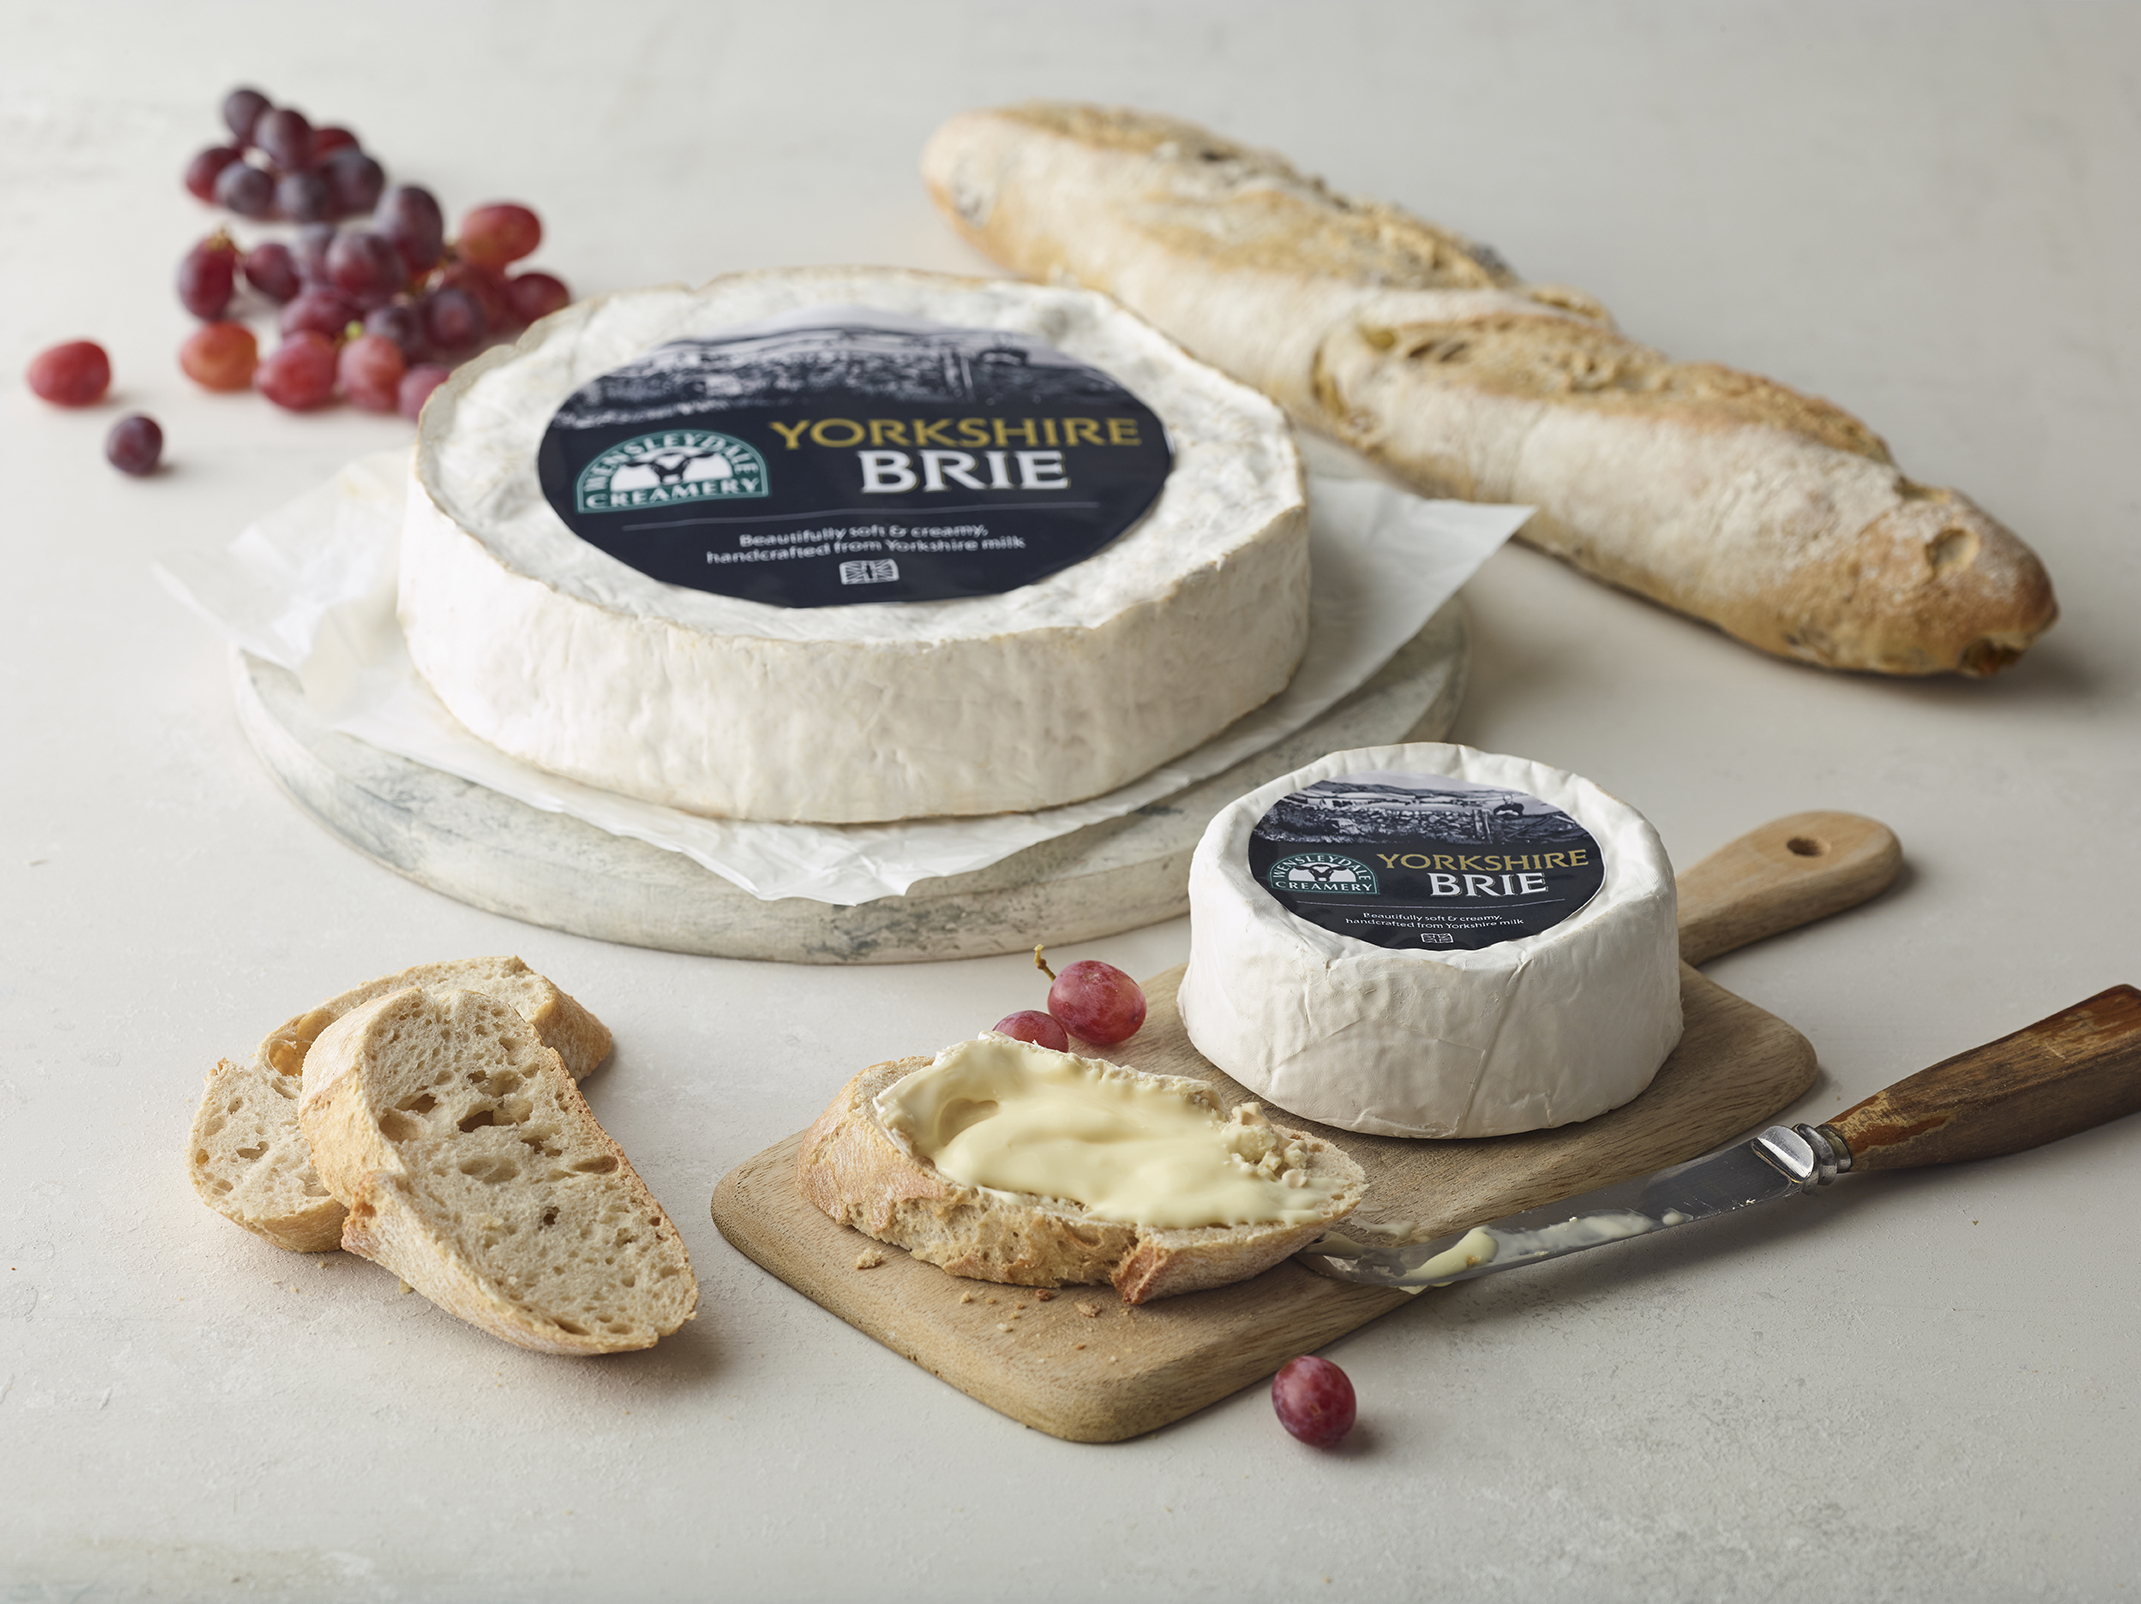 Yorkshire Brie, truckle and wheel